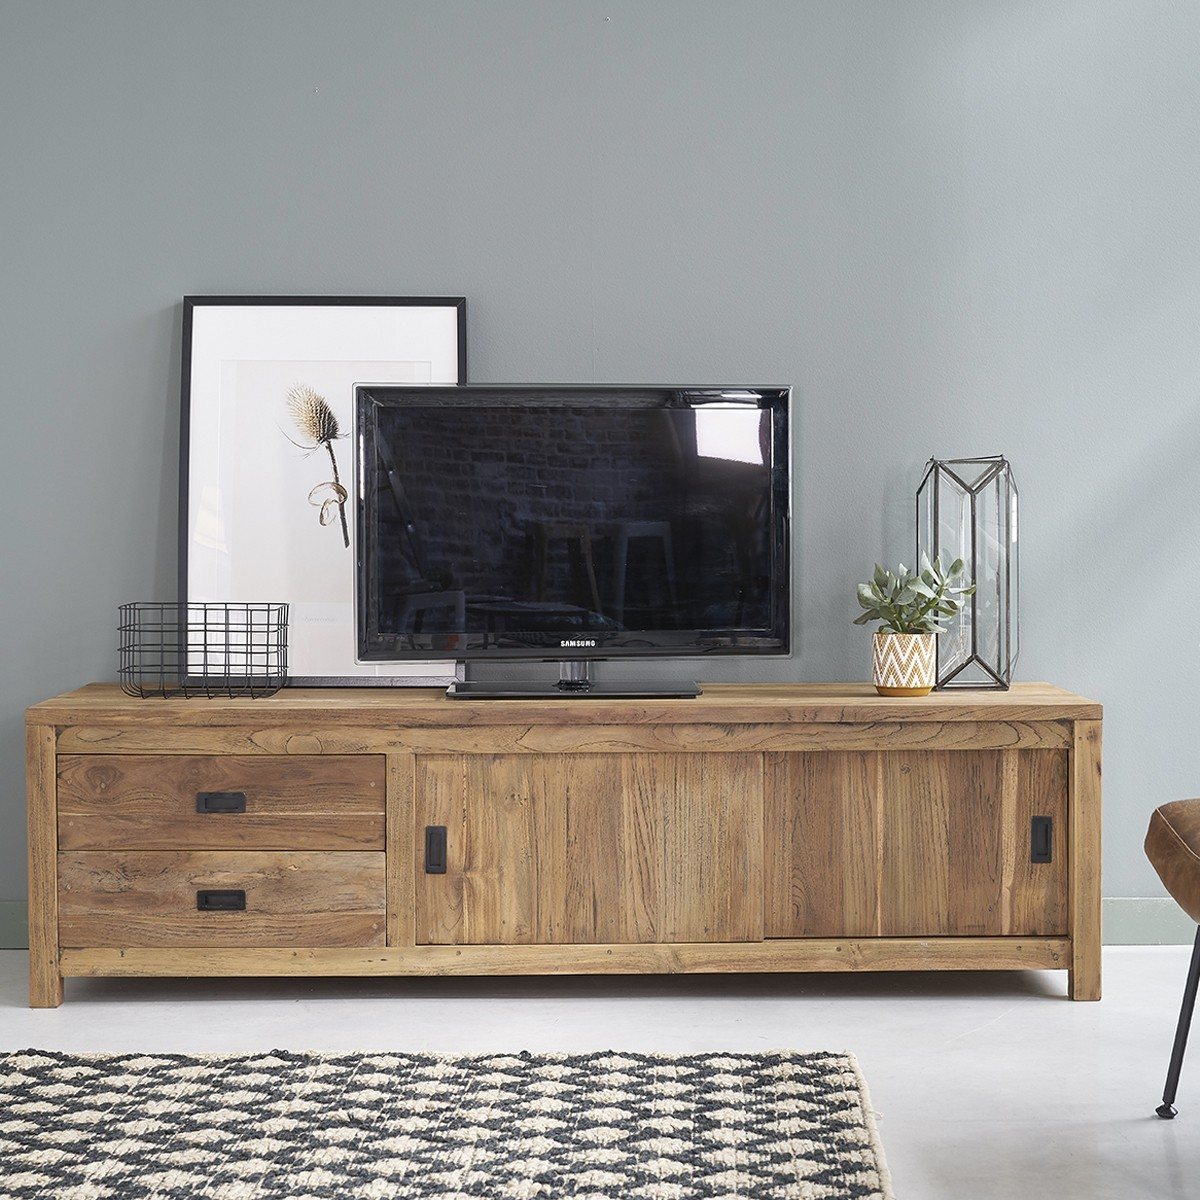 meuble tv en bois de teck recycl 180 cargo bois dessus bois dessous. Black Bedroom Furniture Sets. Home Design Ideas